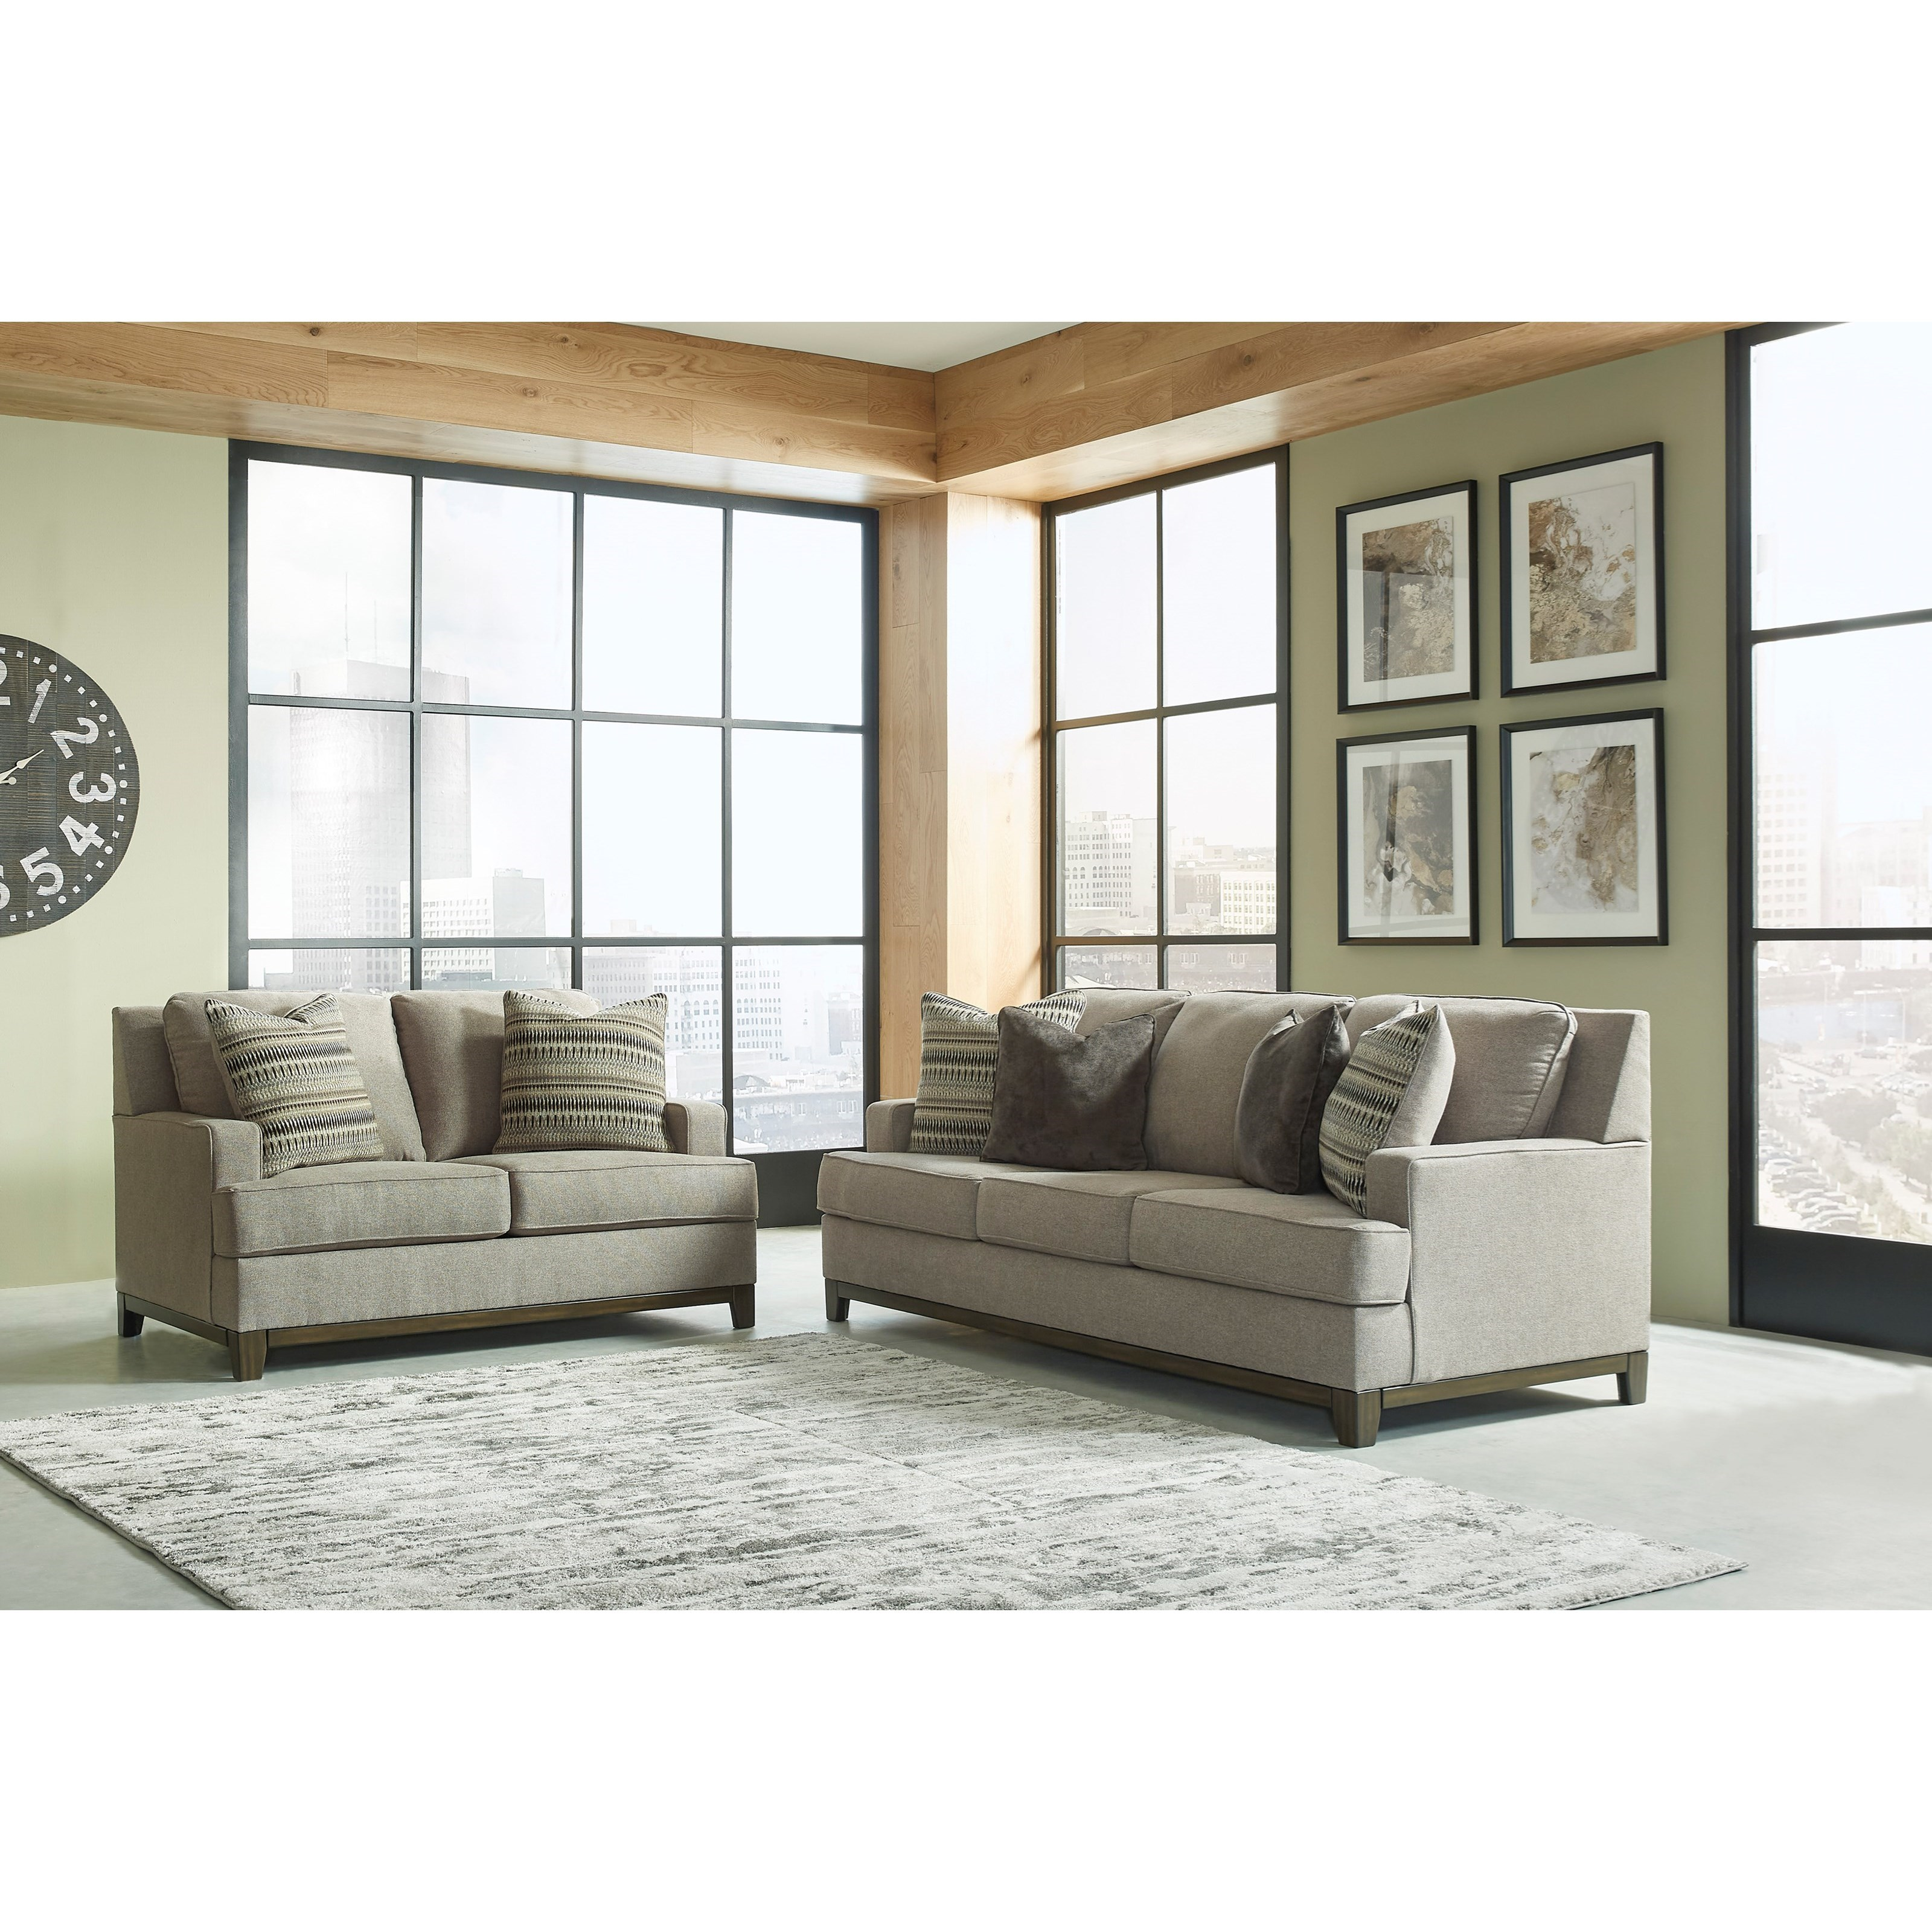 Kaywood Sofa and Loveseat by Signature Design by Ashley at Suburban Furniture